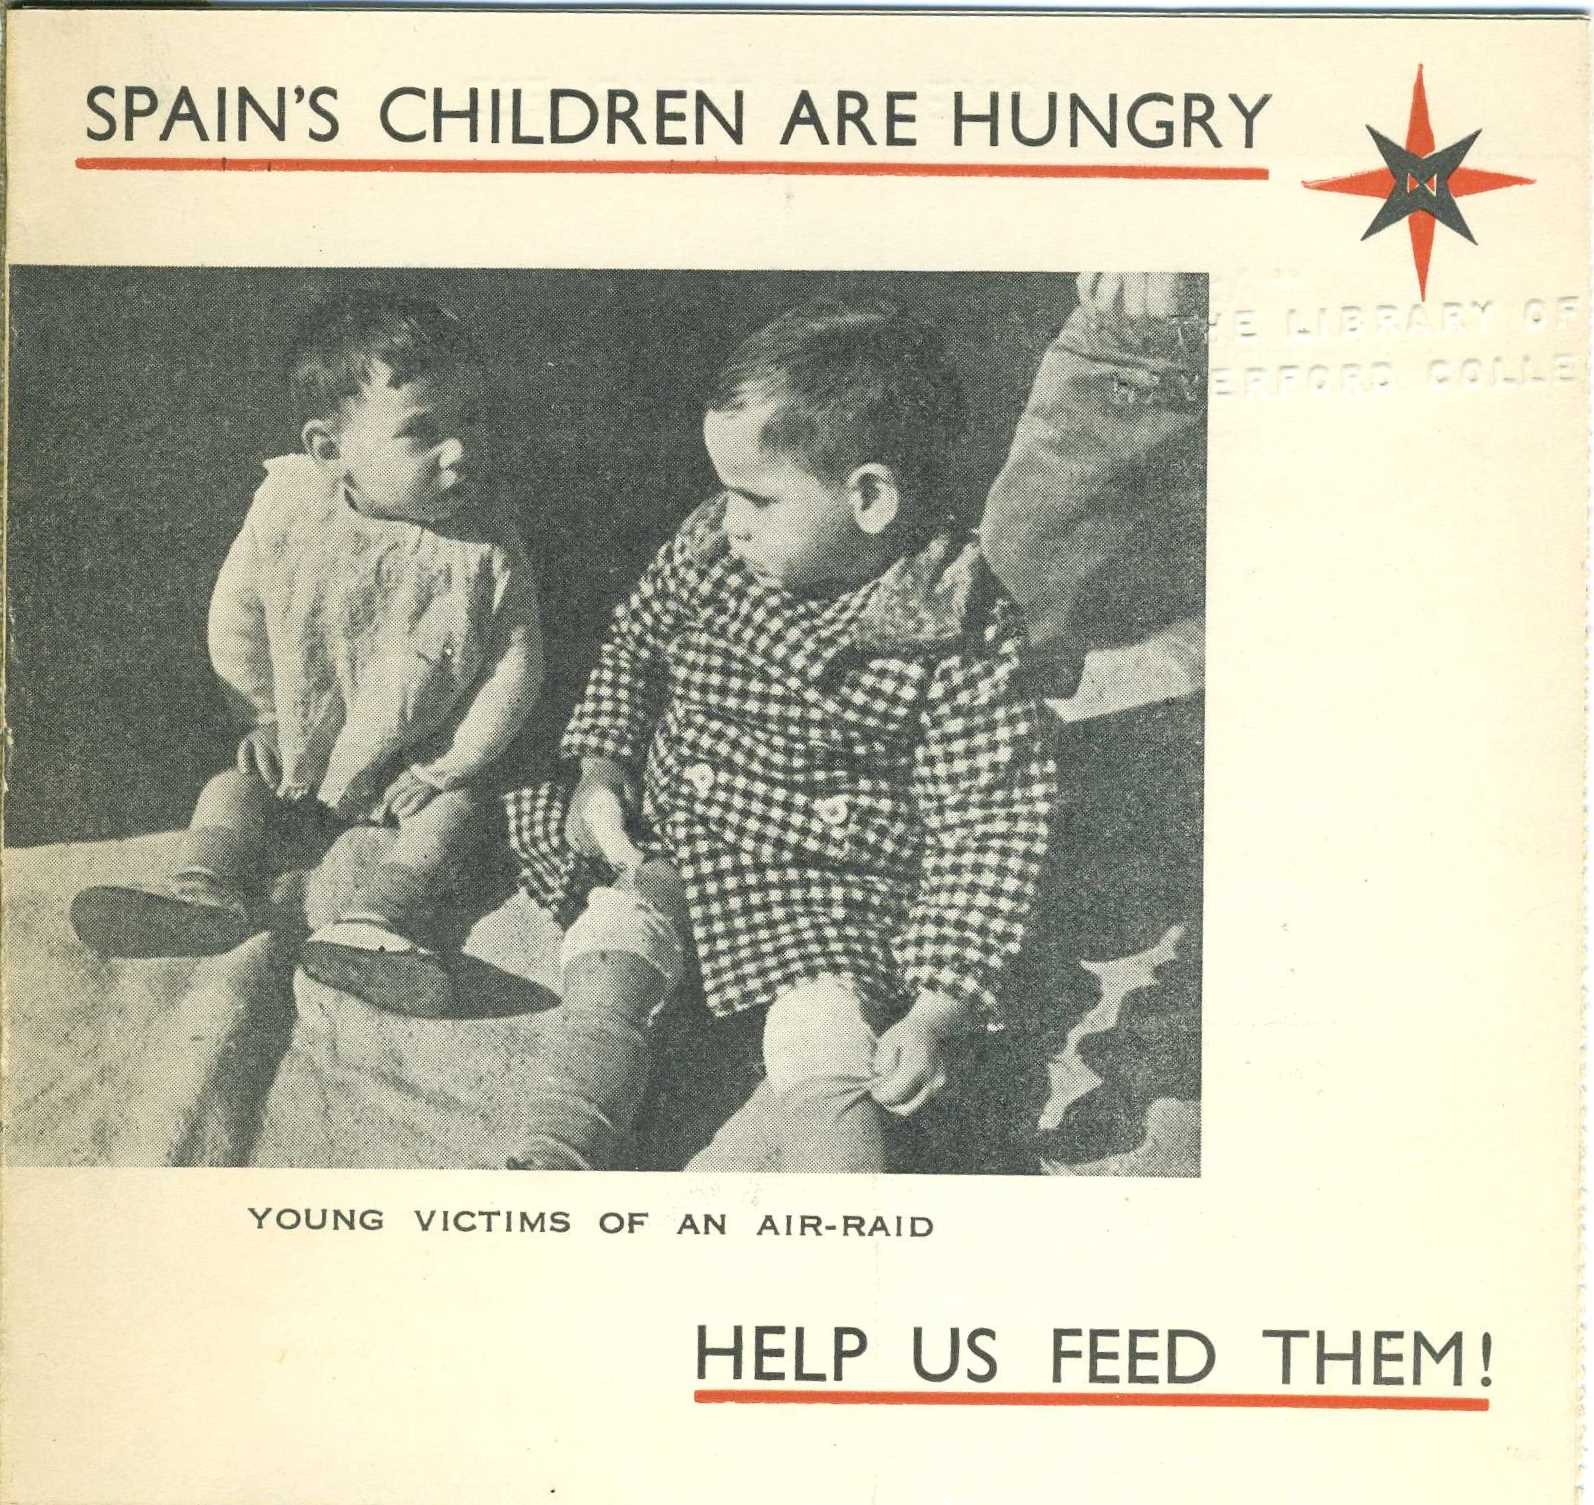 Spain's Children are Hungry. London: Friends Service Council, date unknown. This fundraising pamphlet includes a card to be returned with a donation.